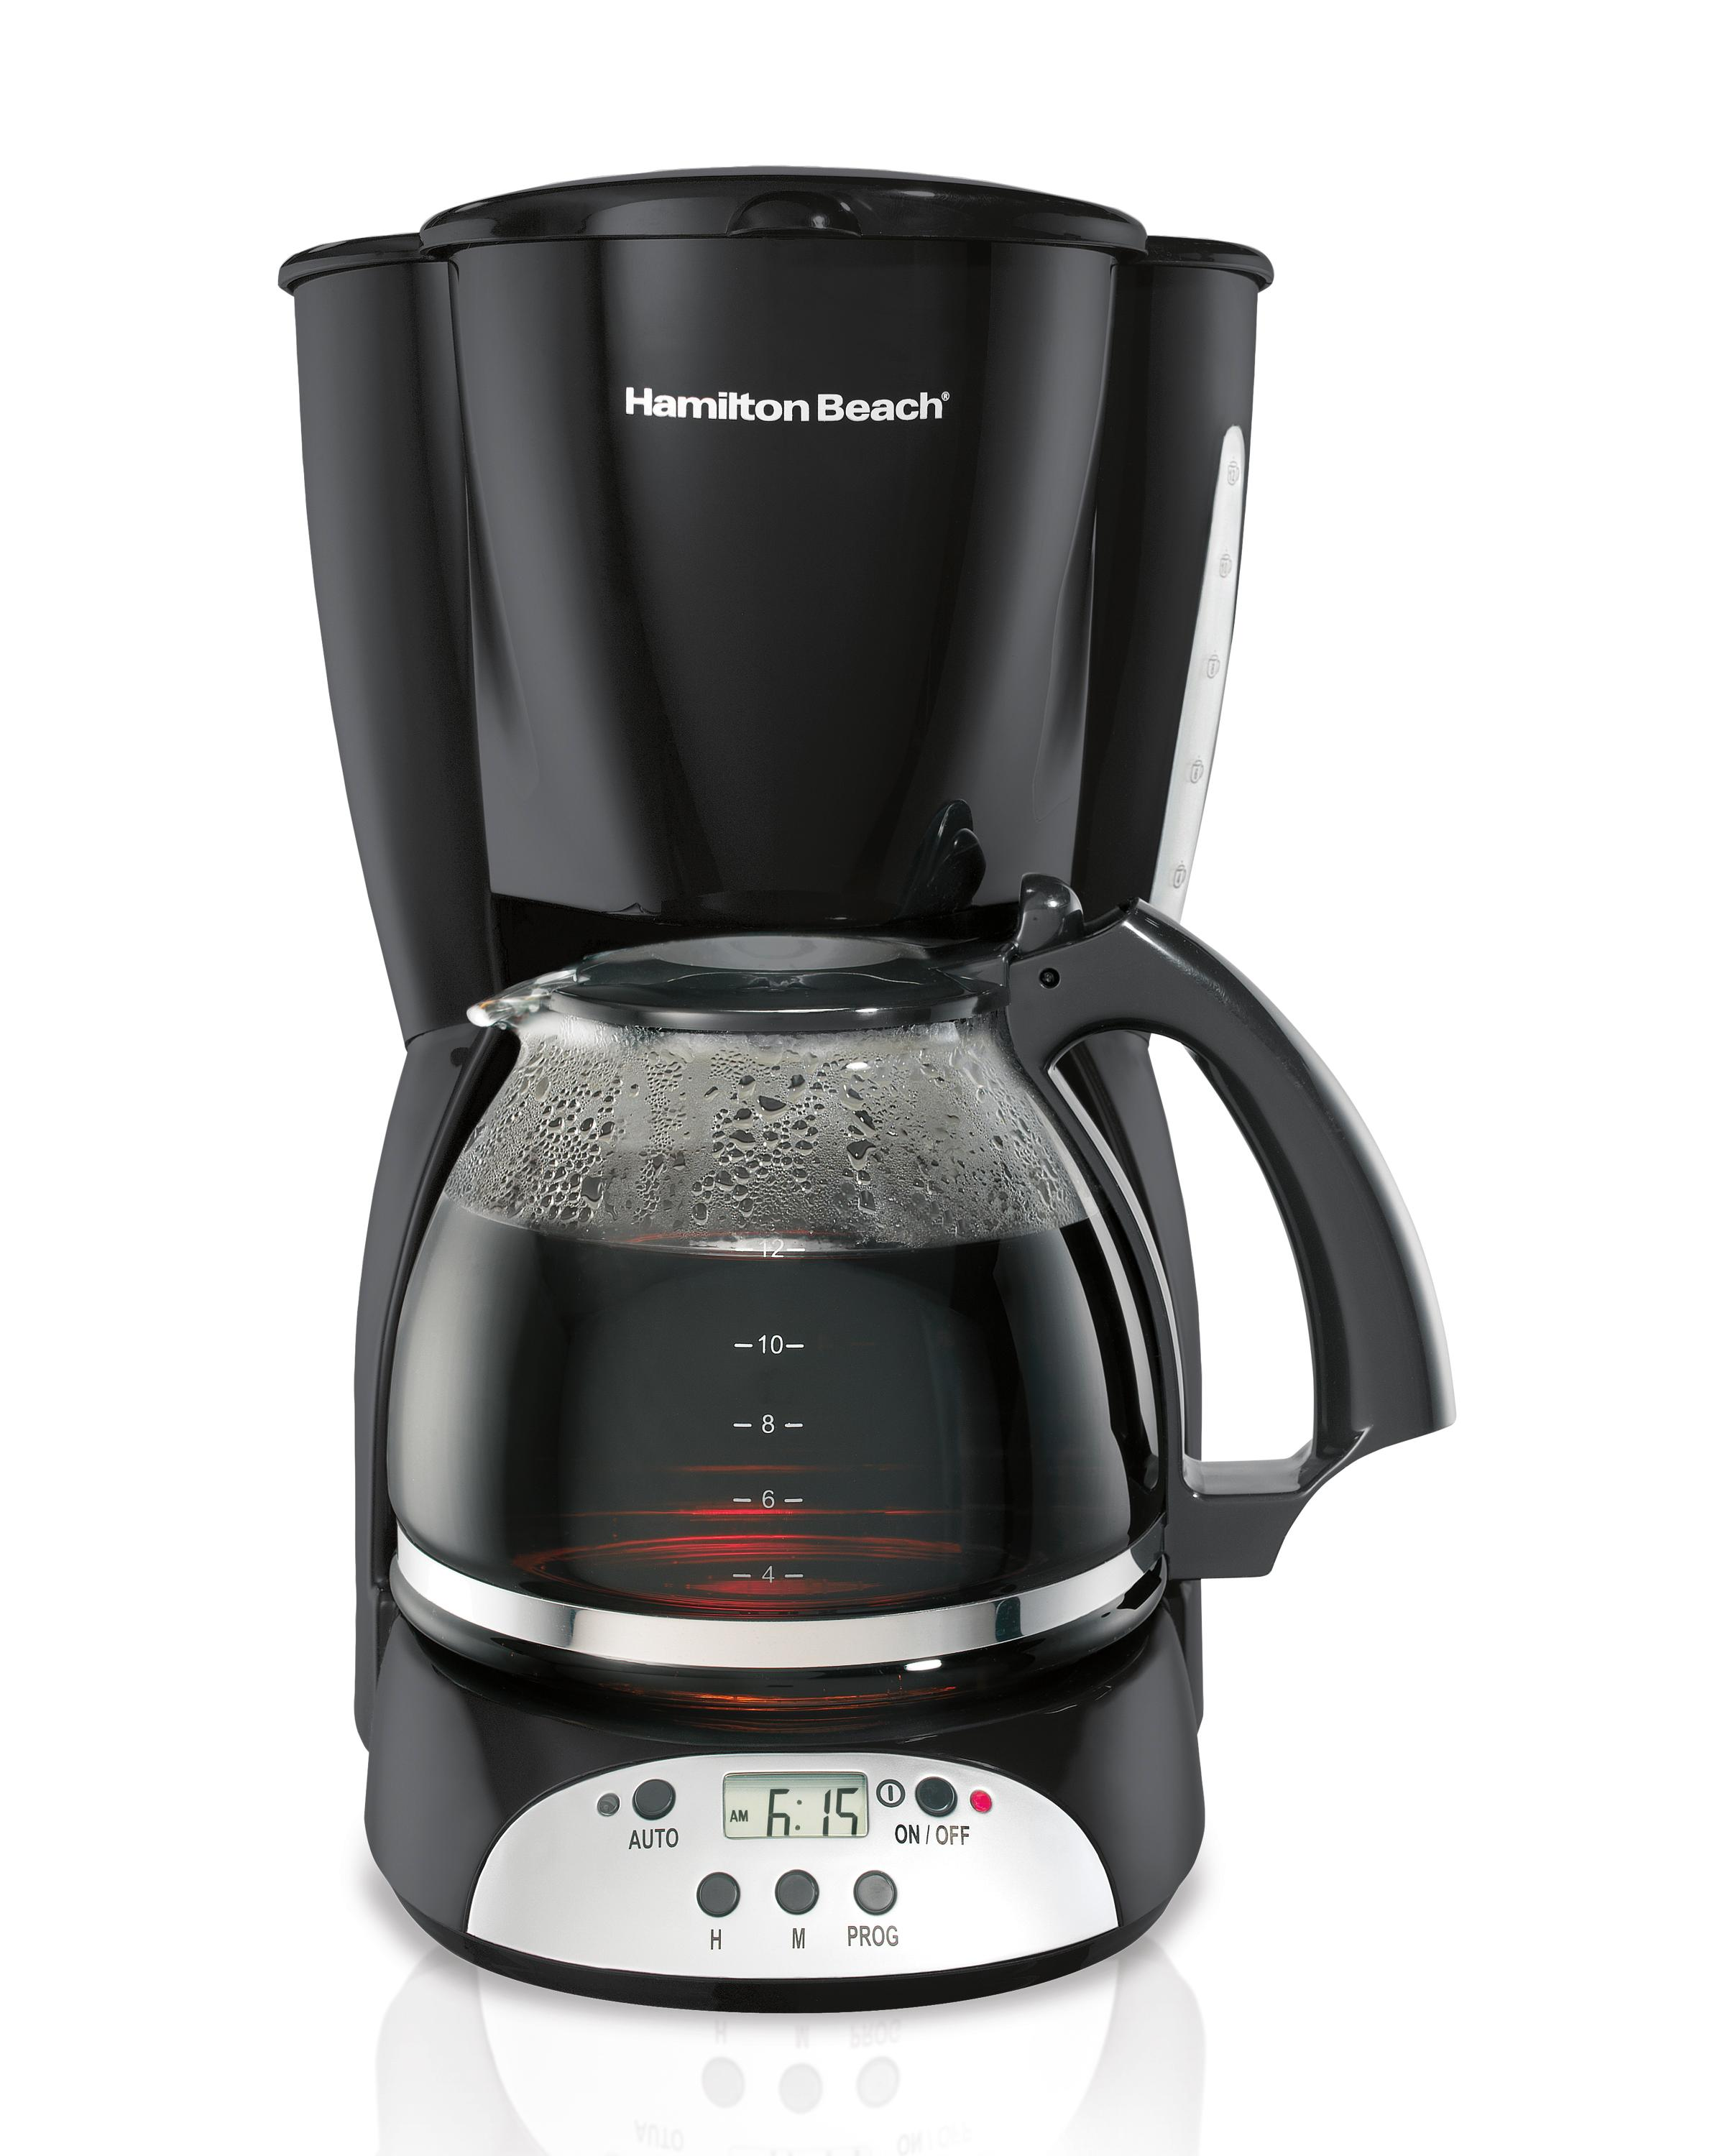 Hamilton Beach 12 Cup Coffee Maker Digital